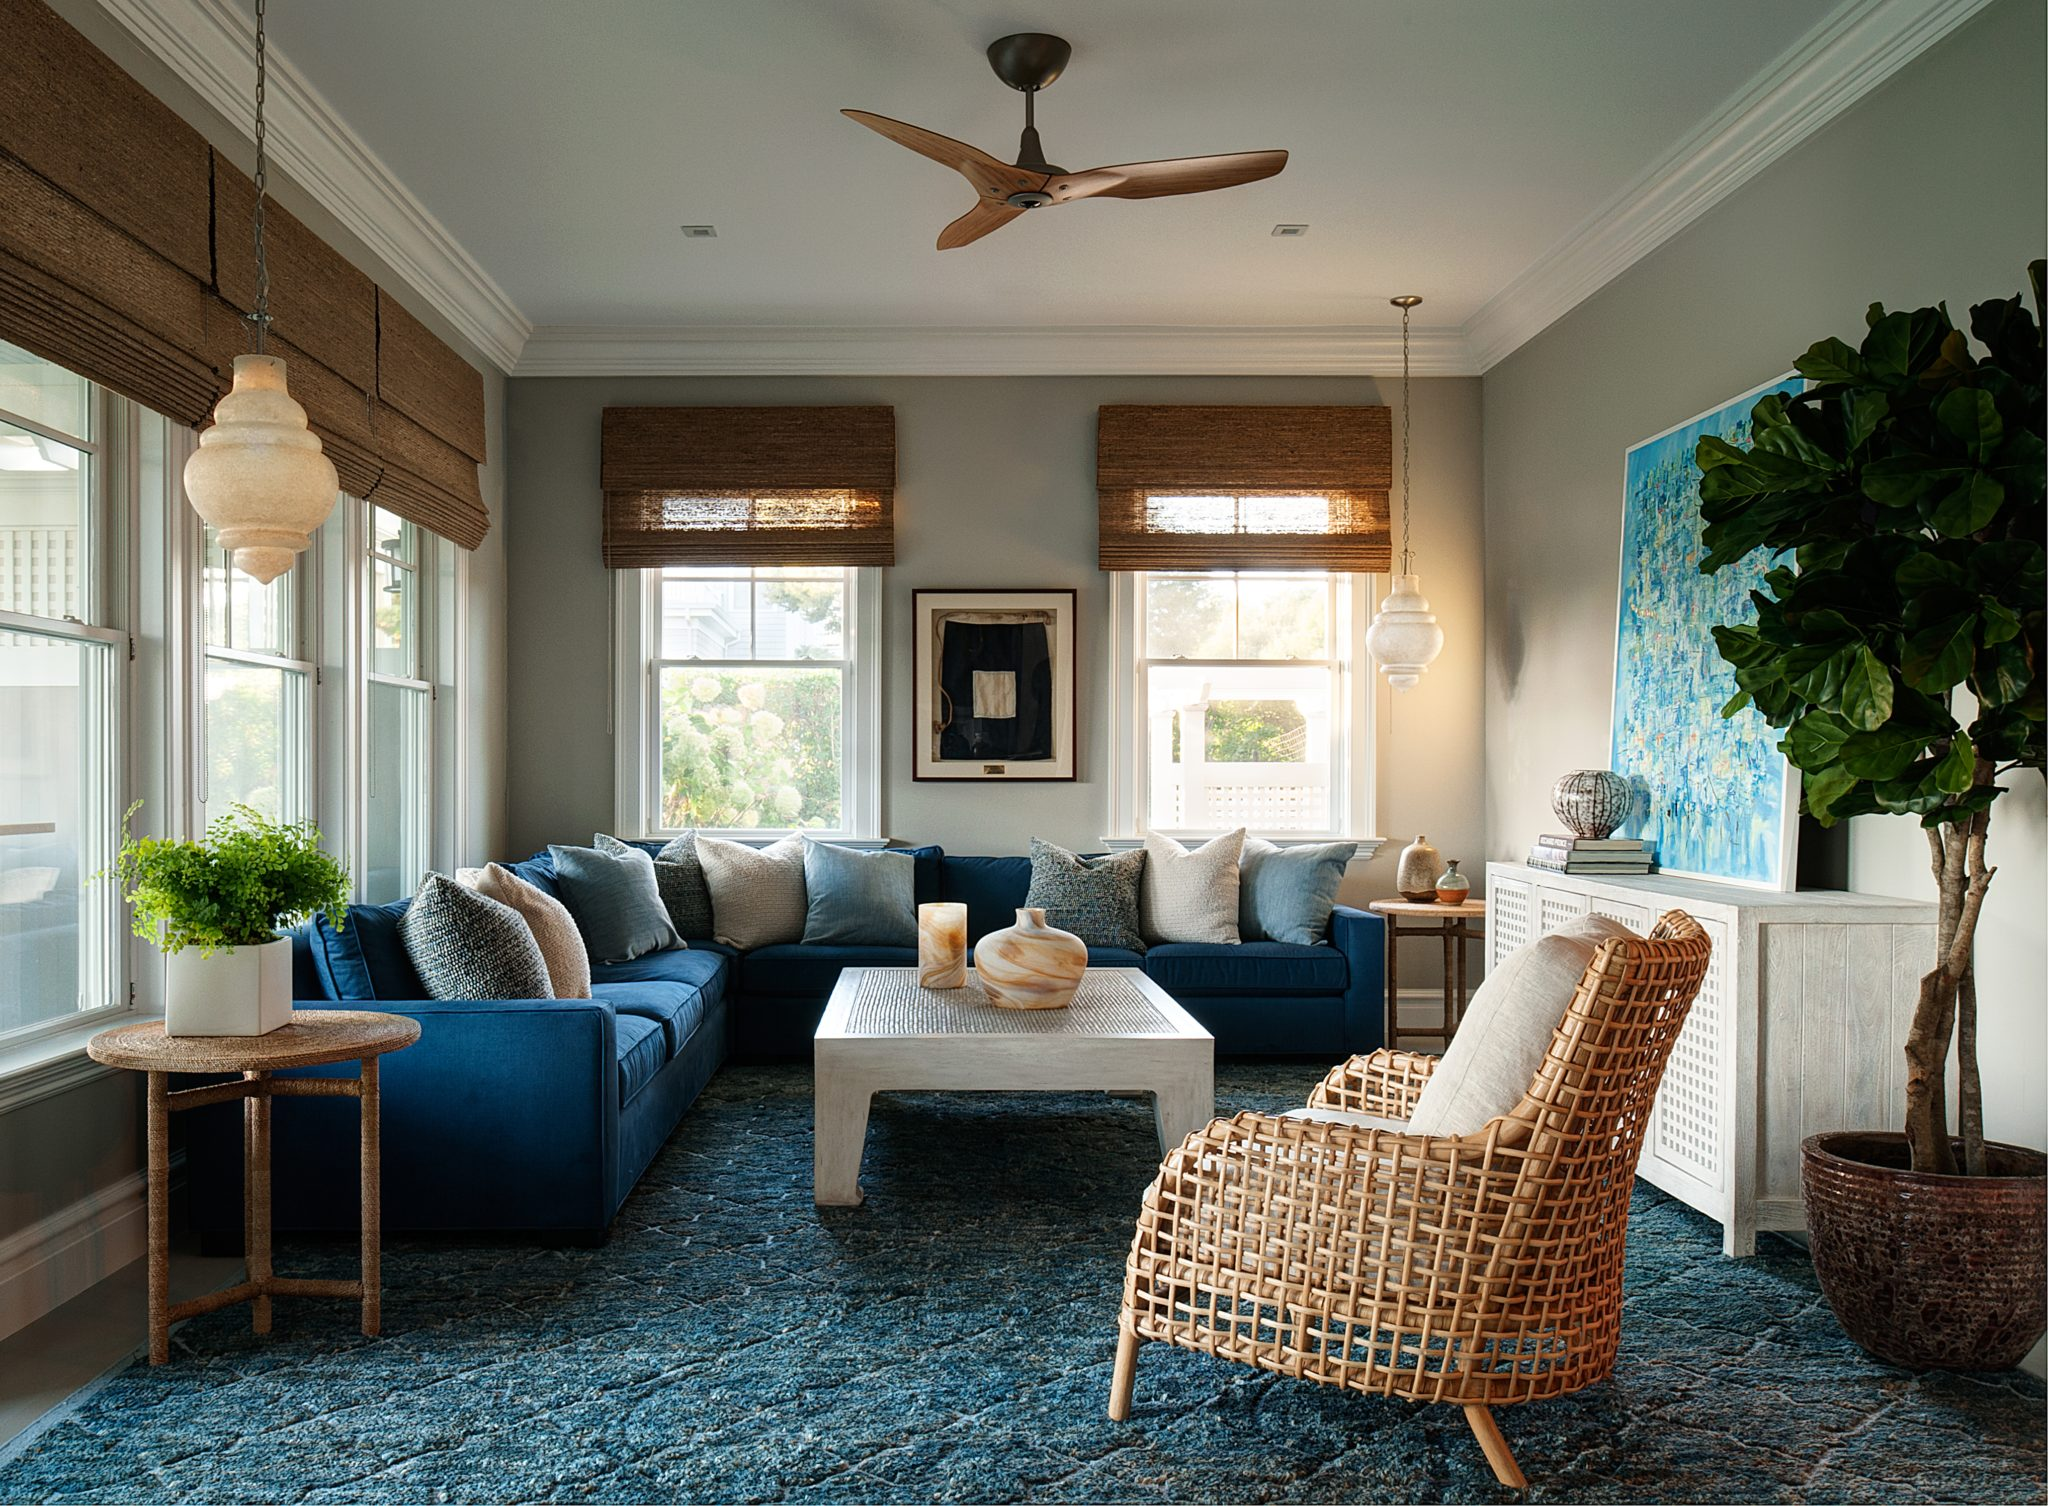 Beach house with a subtle Moroccan vibe, inspired by vintage alabaster pendants. by John Willey | Willey Design LLC